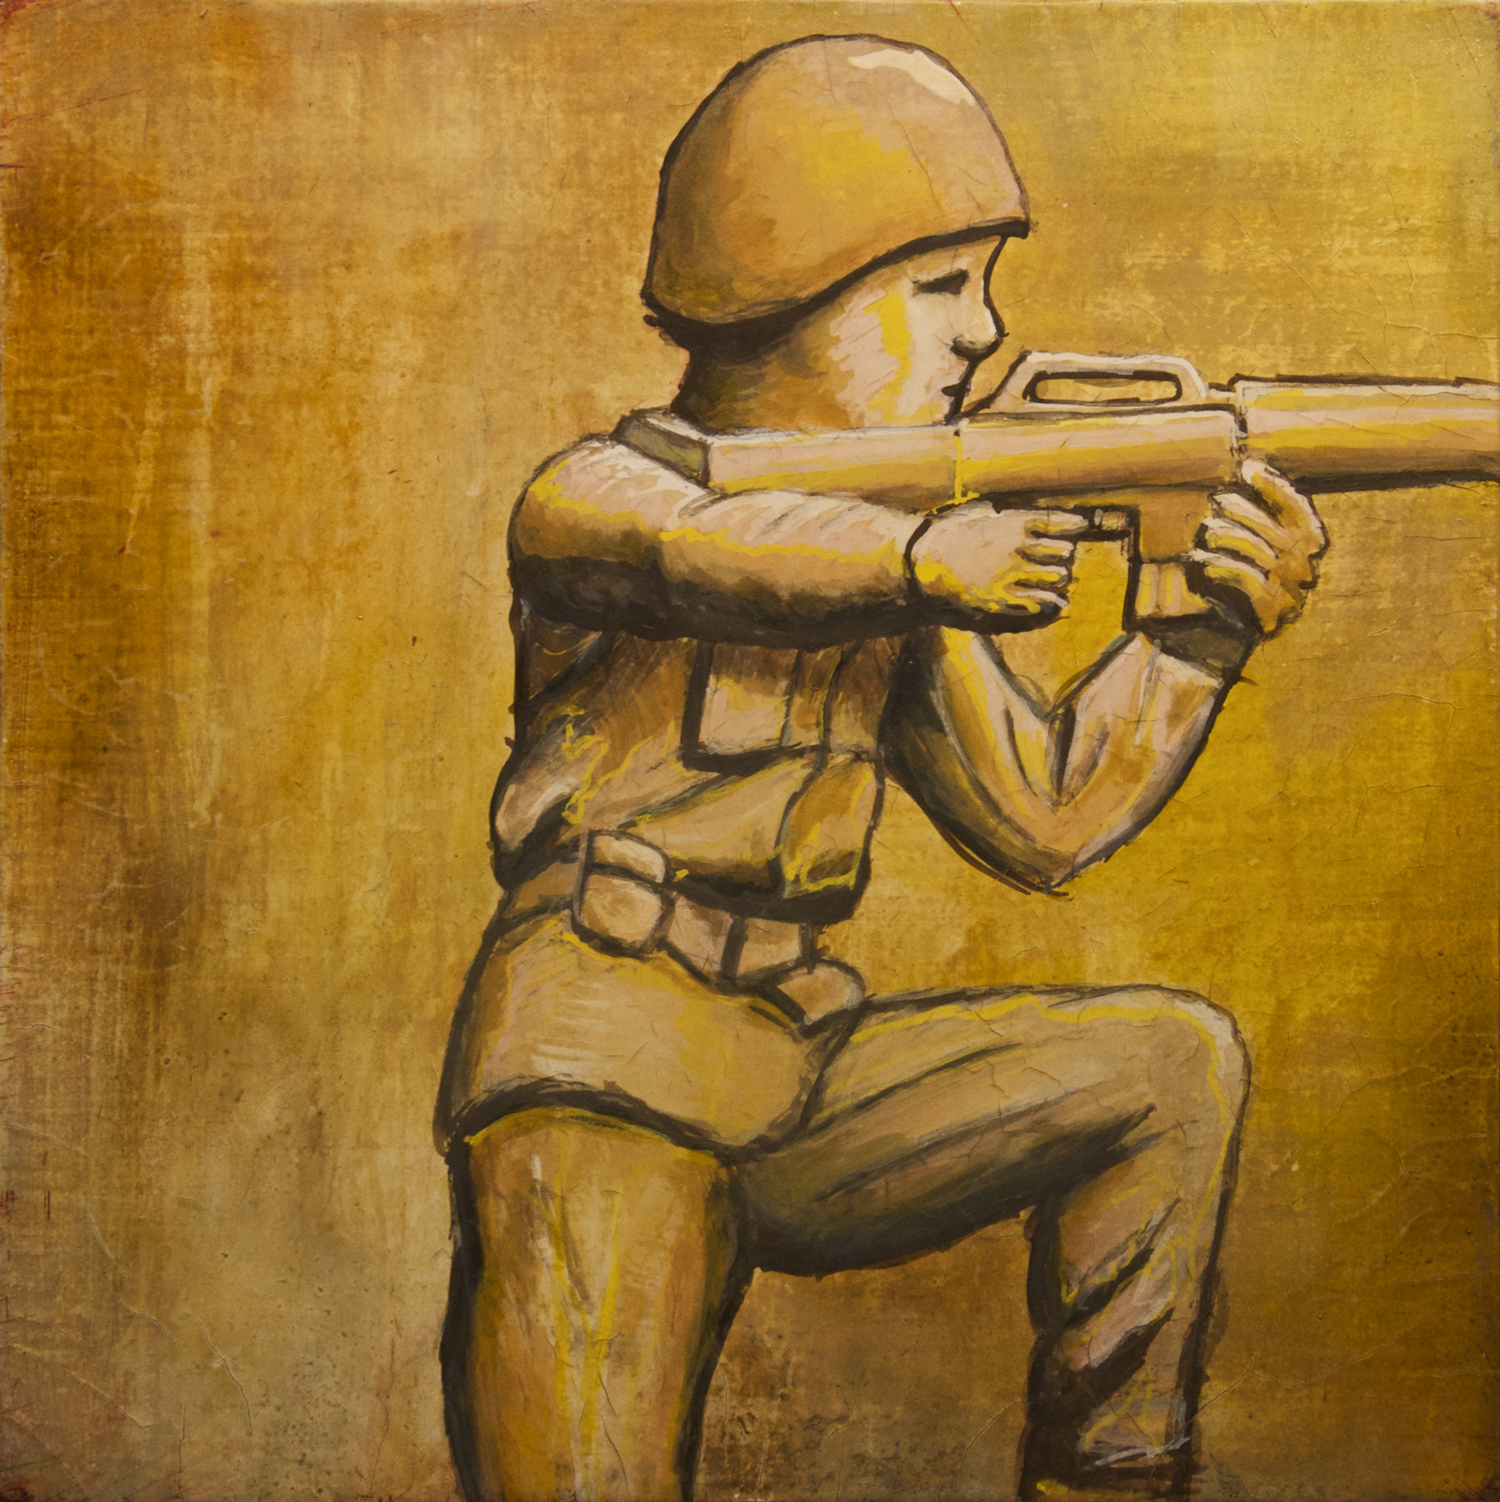 Plastic Soldier gouche painting, by Billy Reiter